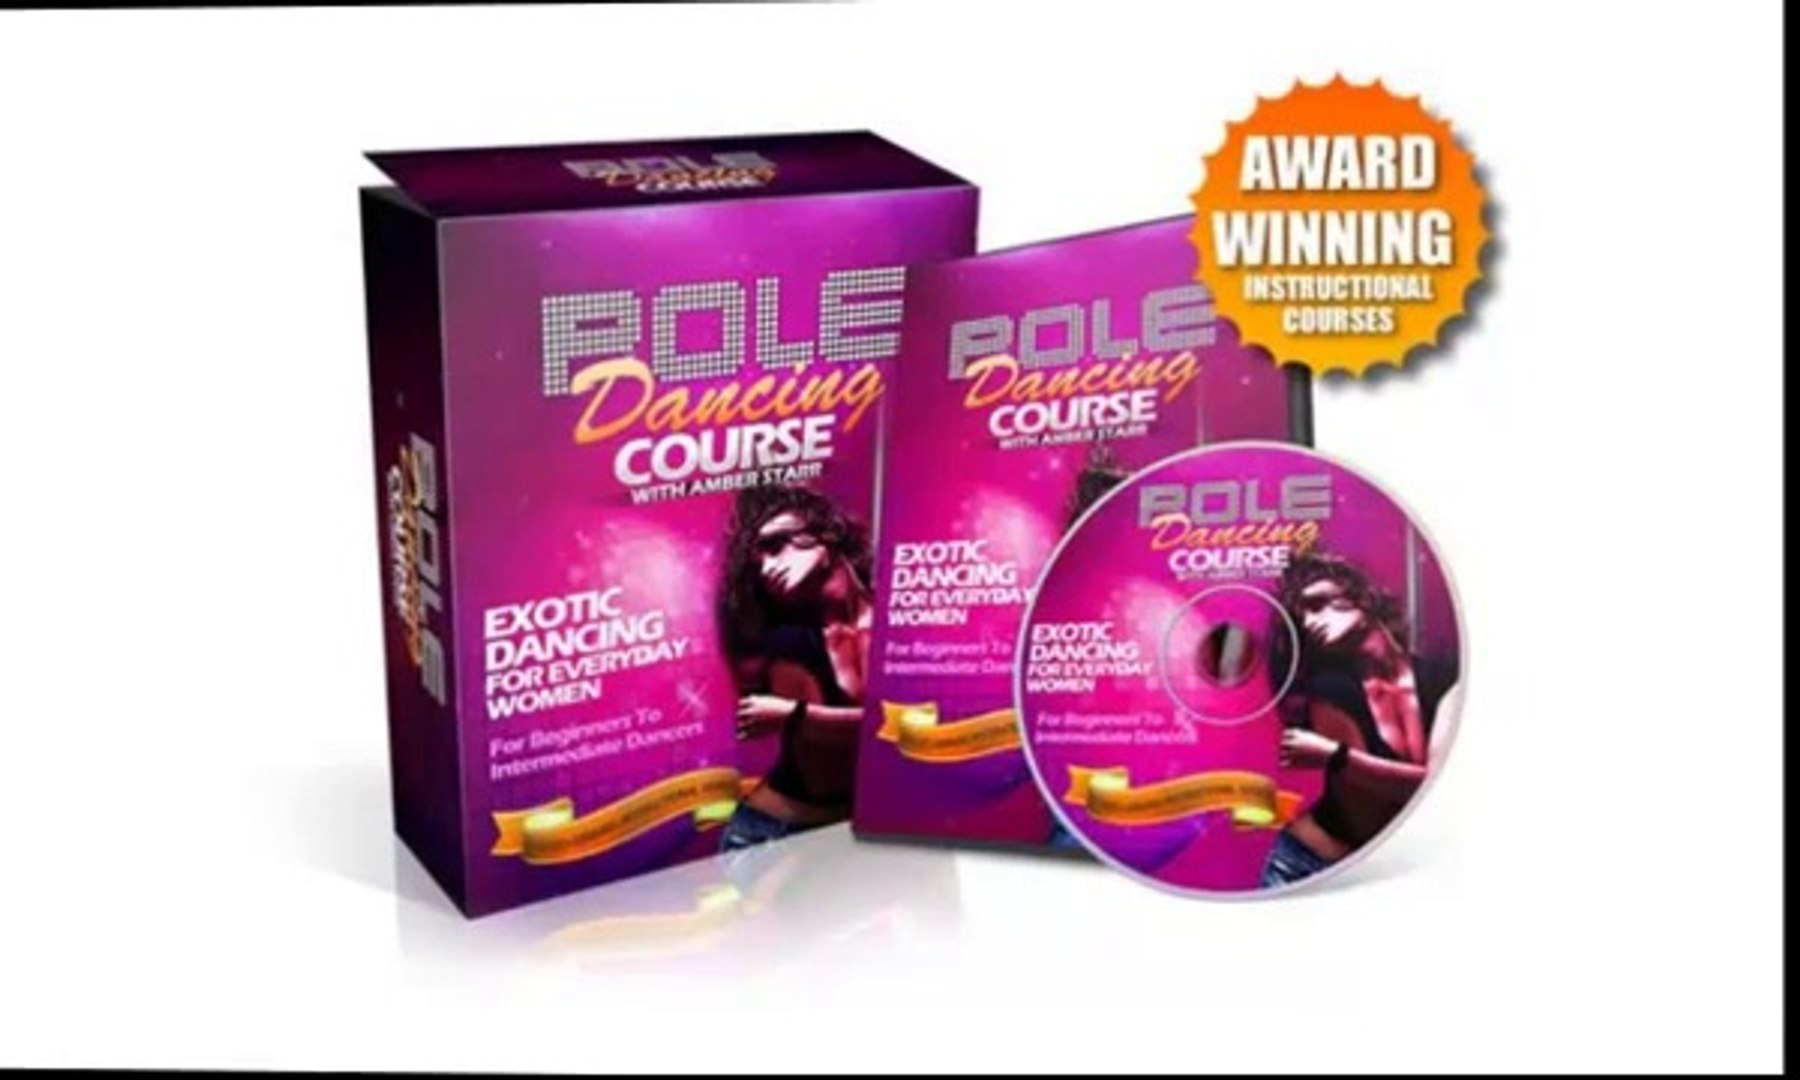 pole dancing for men - pole dancing courses